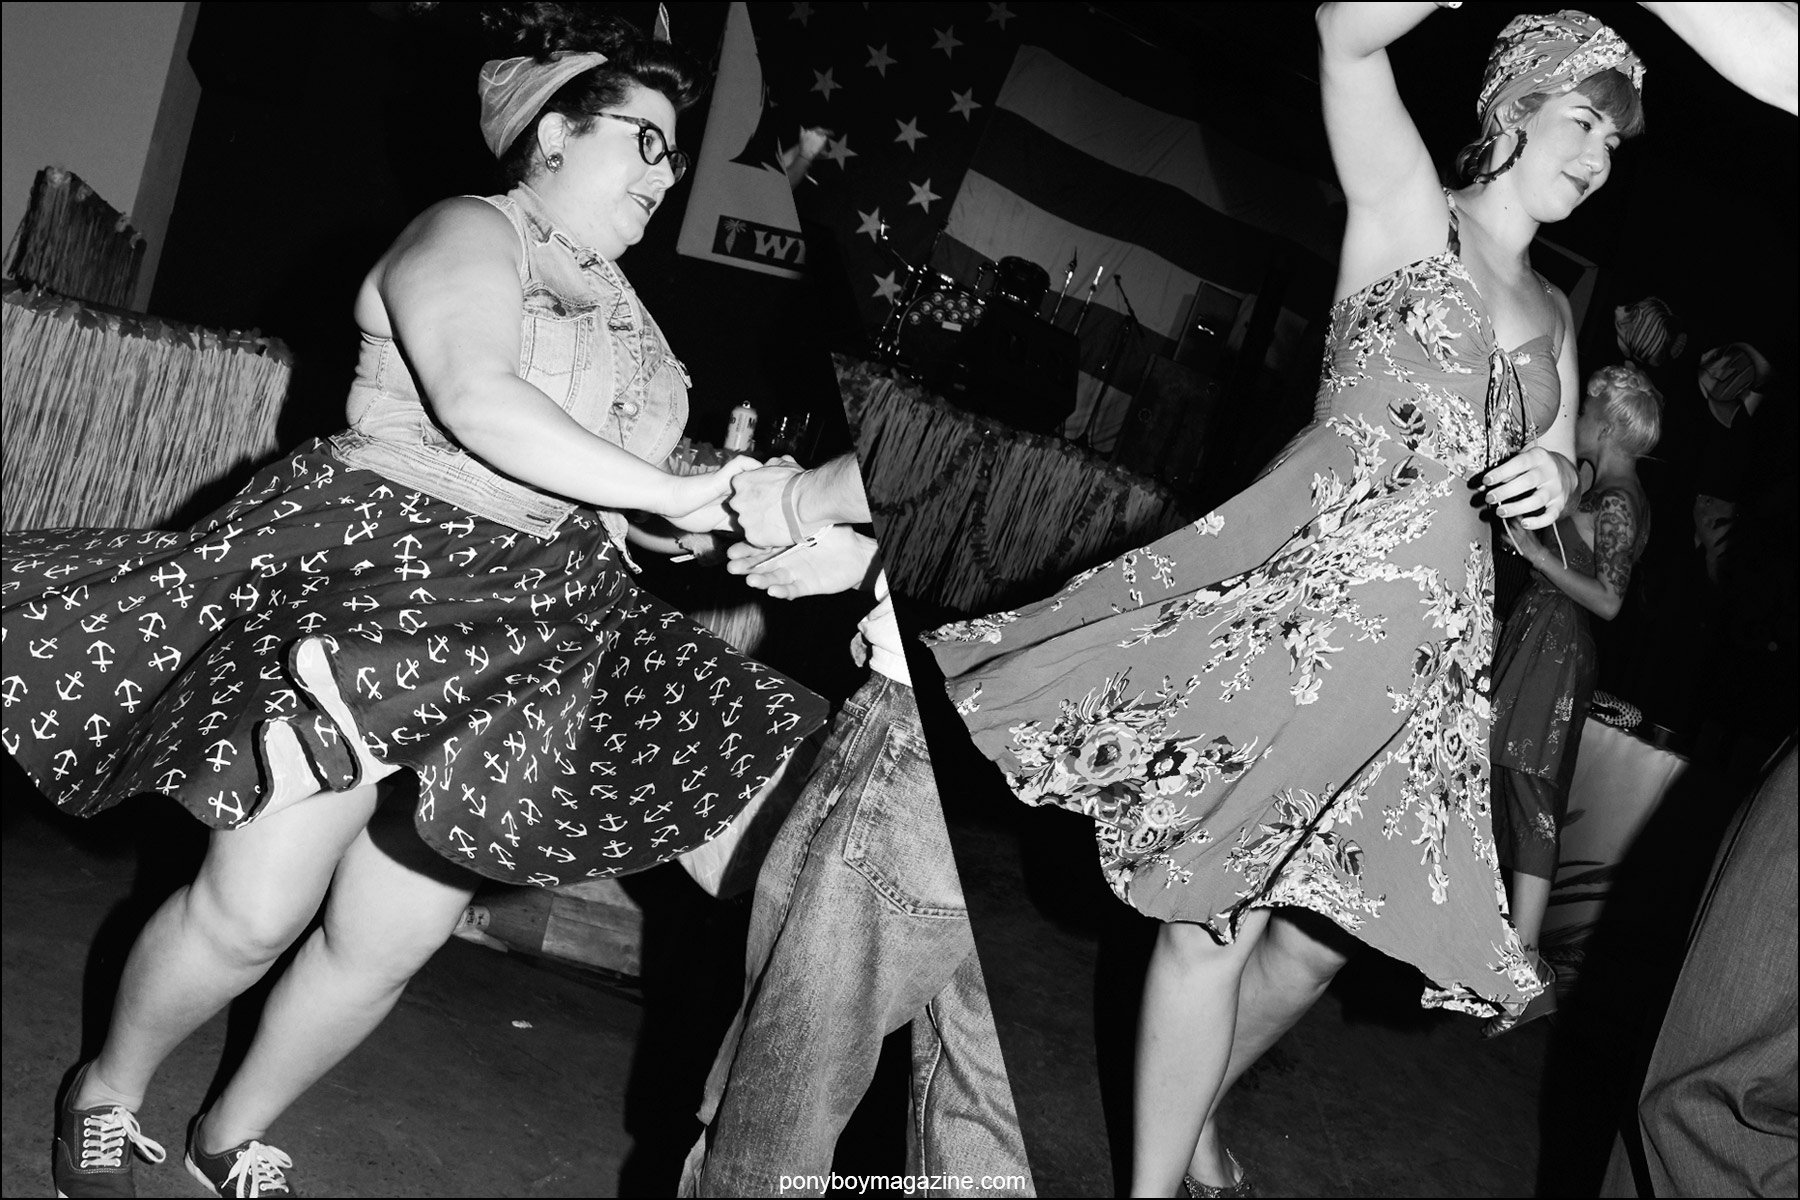 Rockabilly jive dancers in full skirts, photographed at Hula Rock Vol 2 in New York City. Photographs by Alexander Thompson for Ponyboy magazine NY.